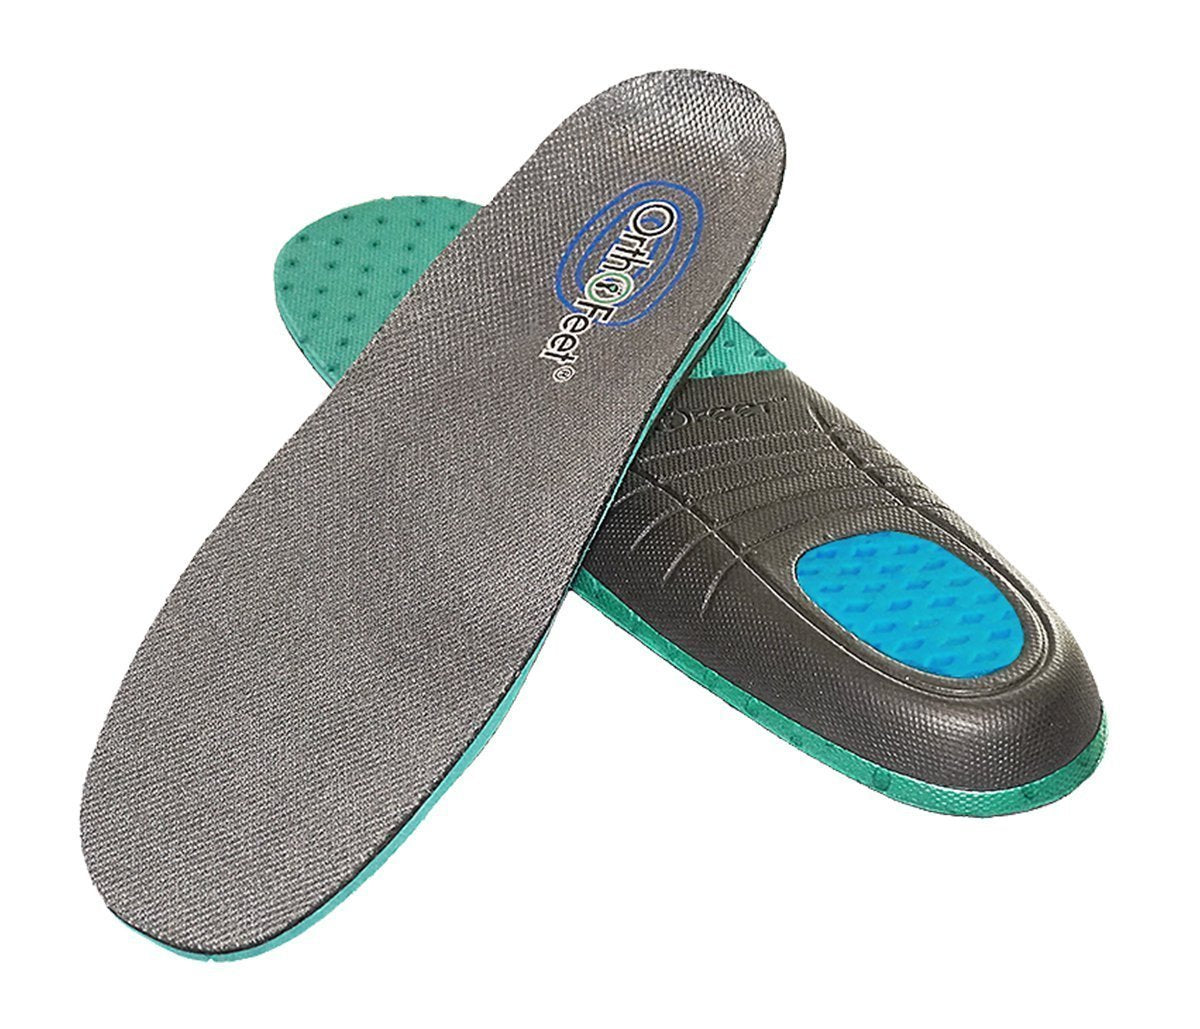 Insole - Orthofeet Men's Orthotic Insoles